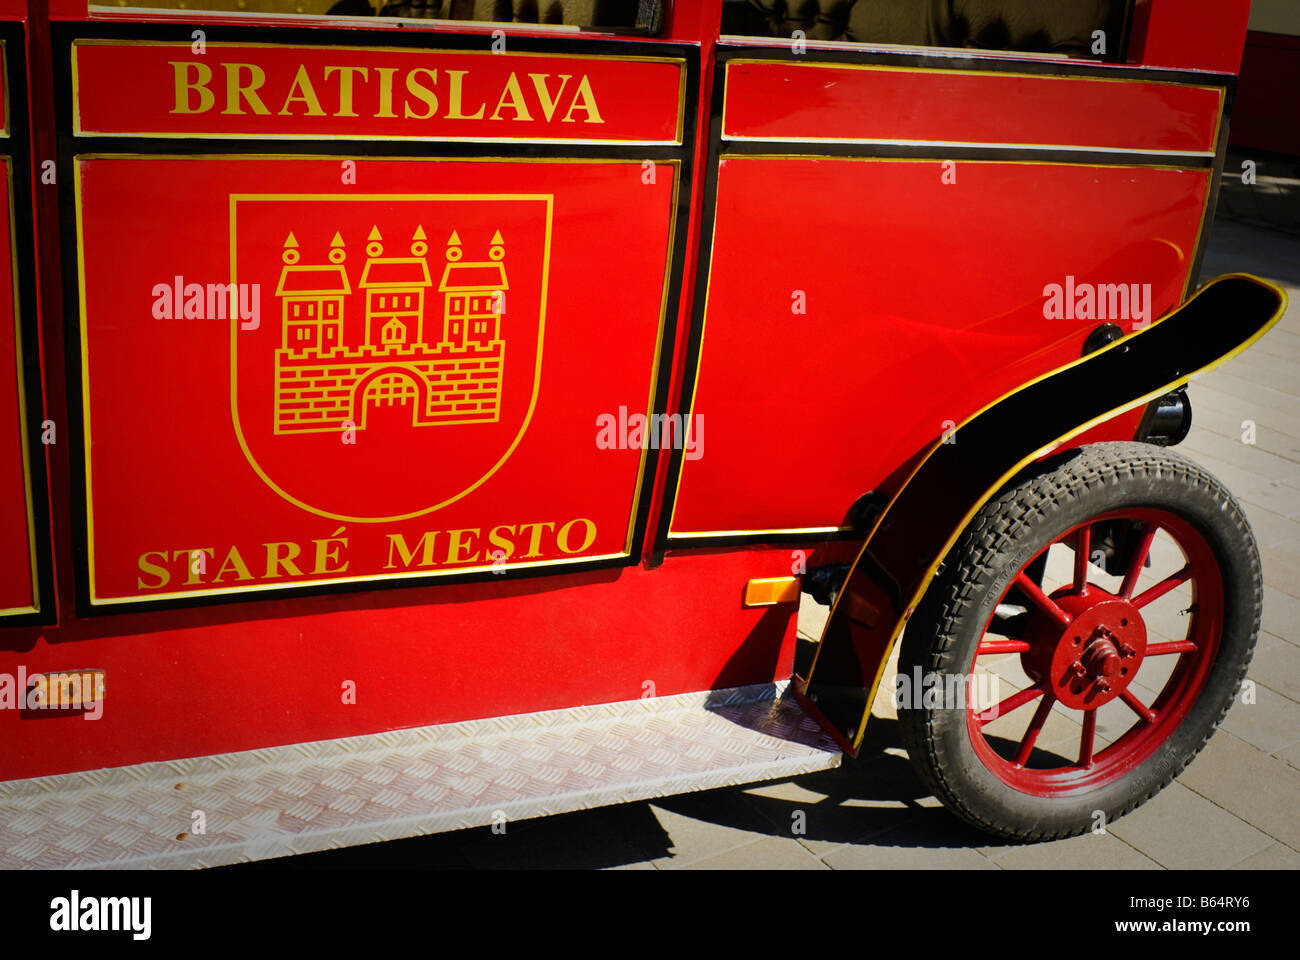 Red tourist sightseeing train in main central square in old town Bratislava. - Stock Image